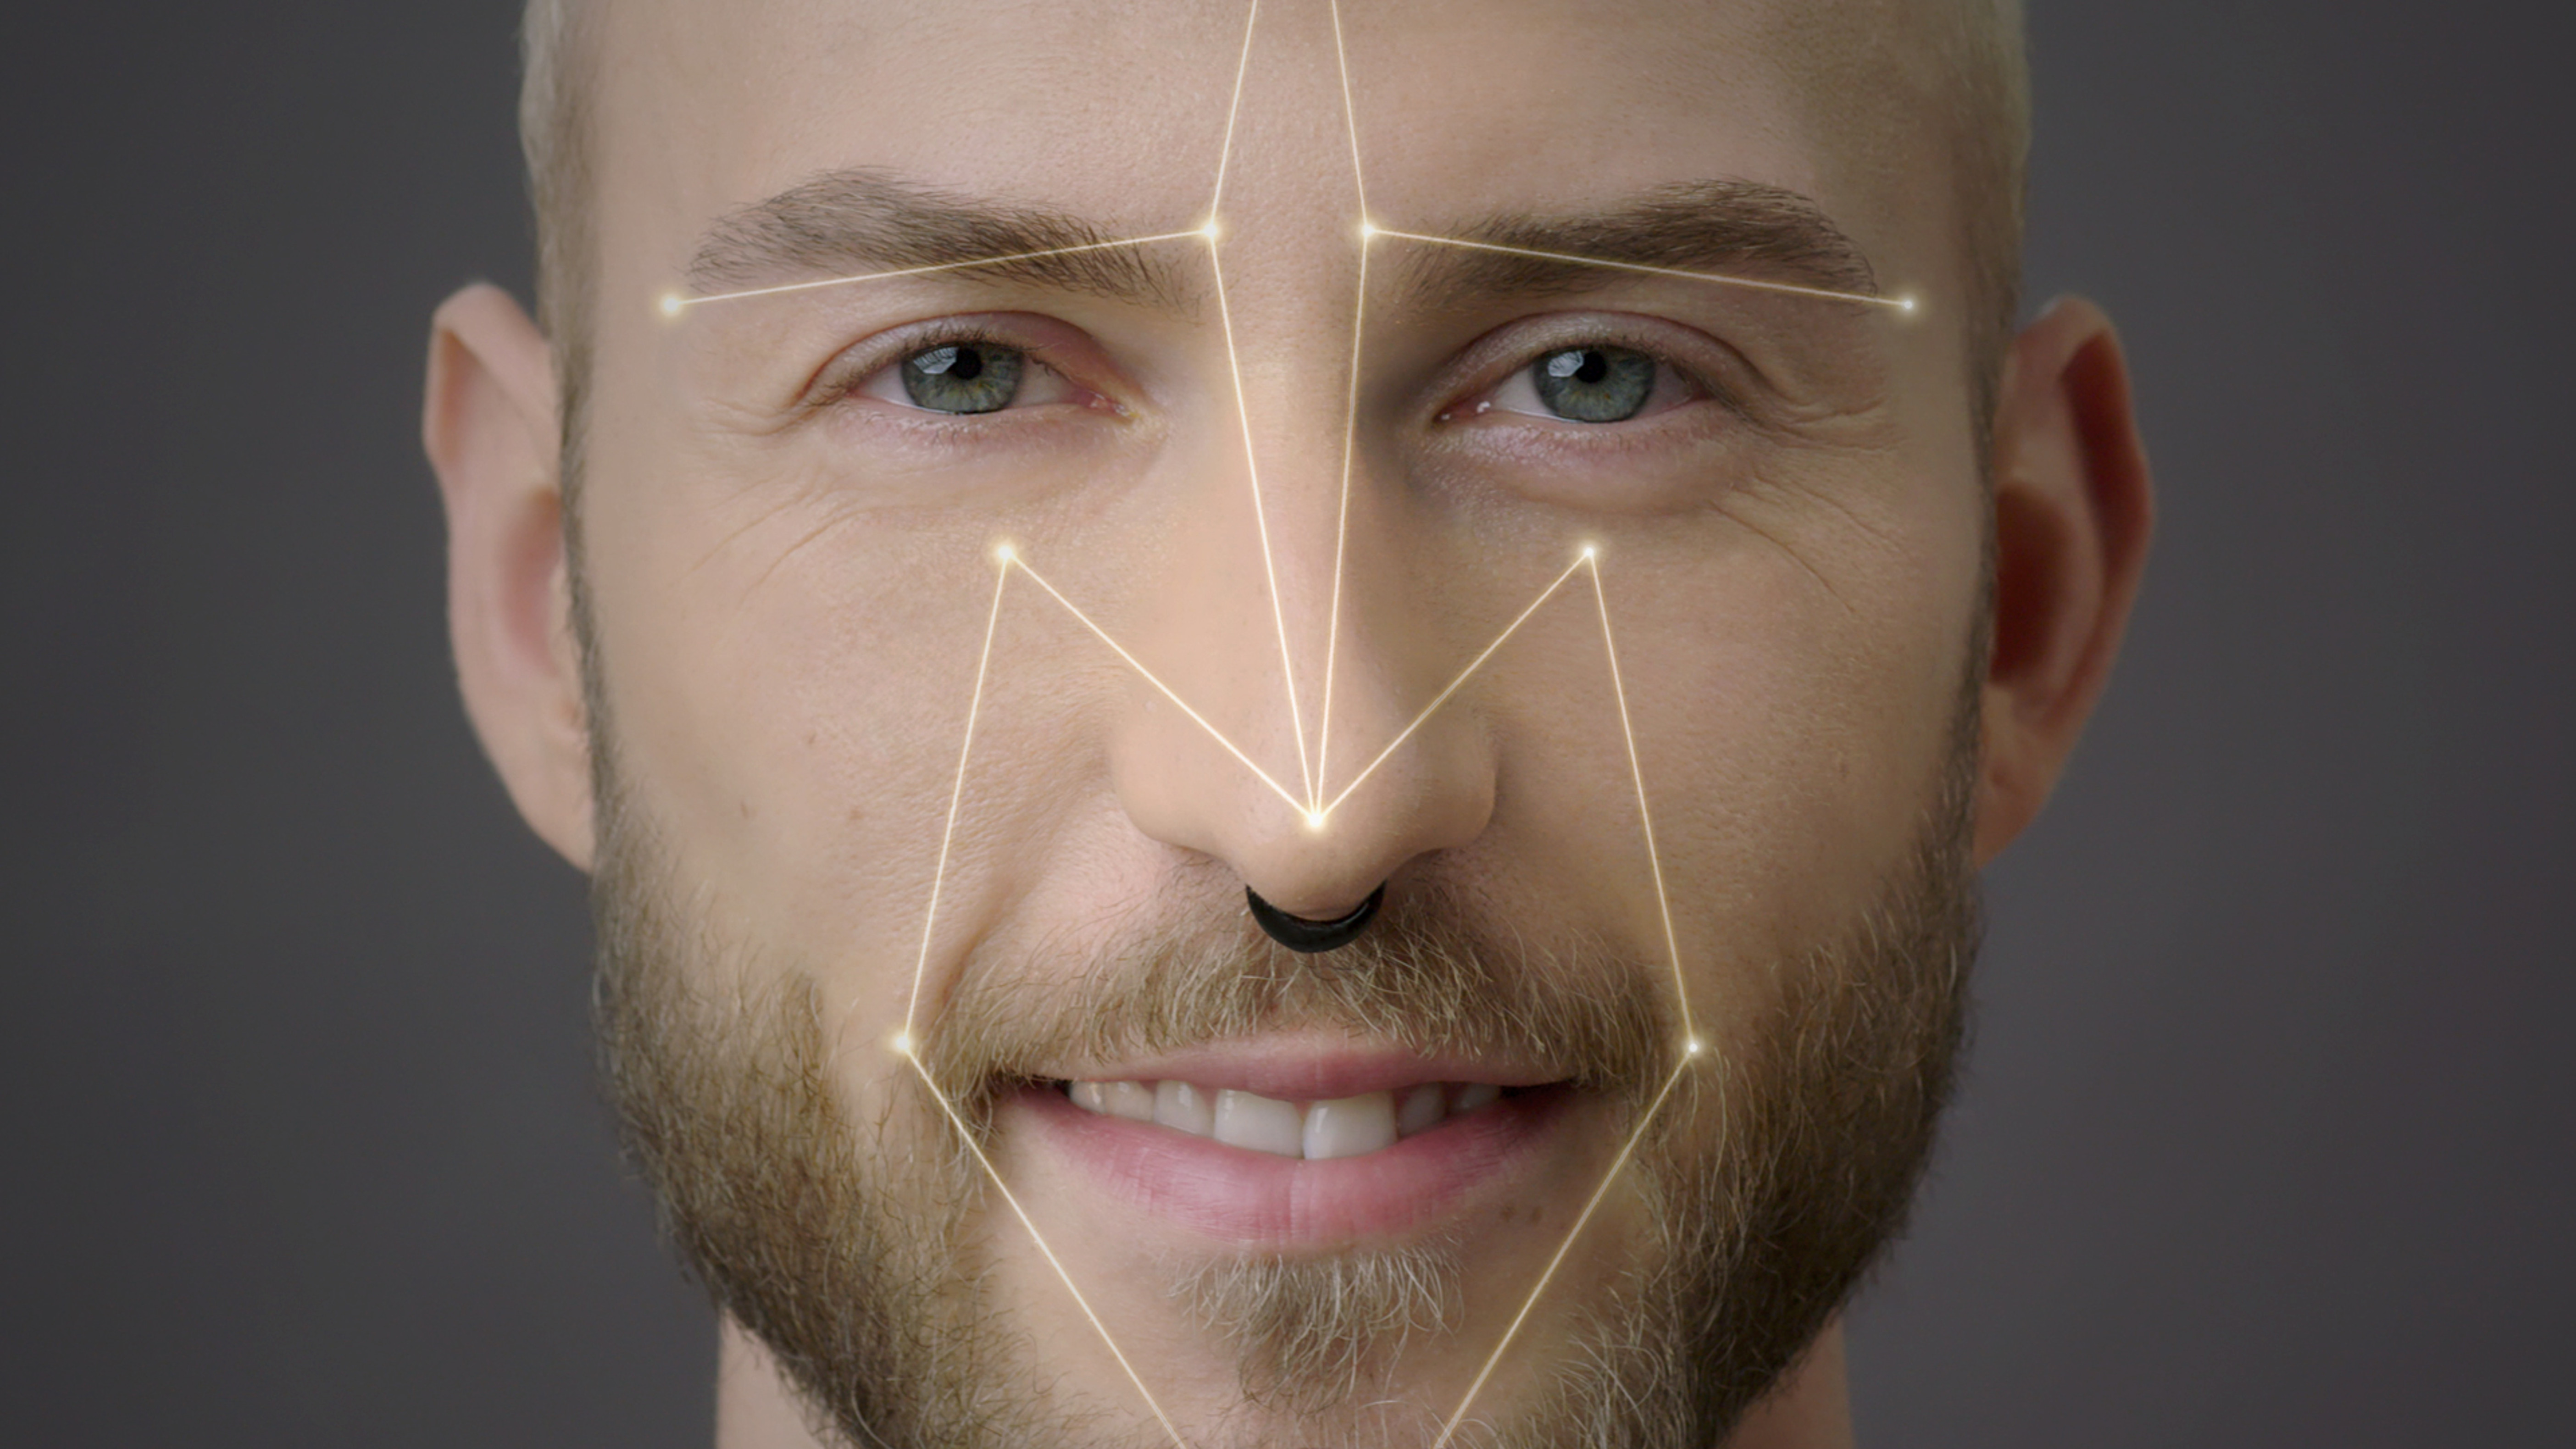 Gesichtserkennung / Facial Recognition 2D